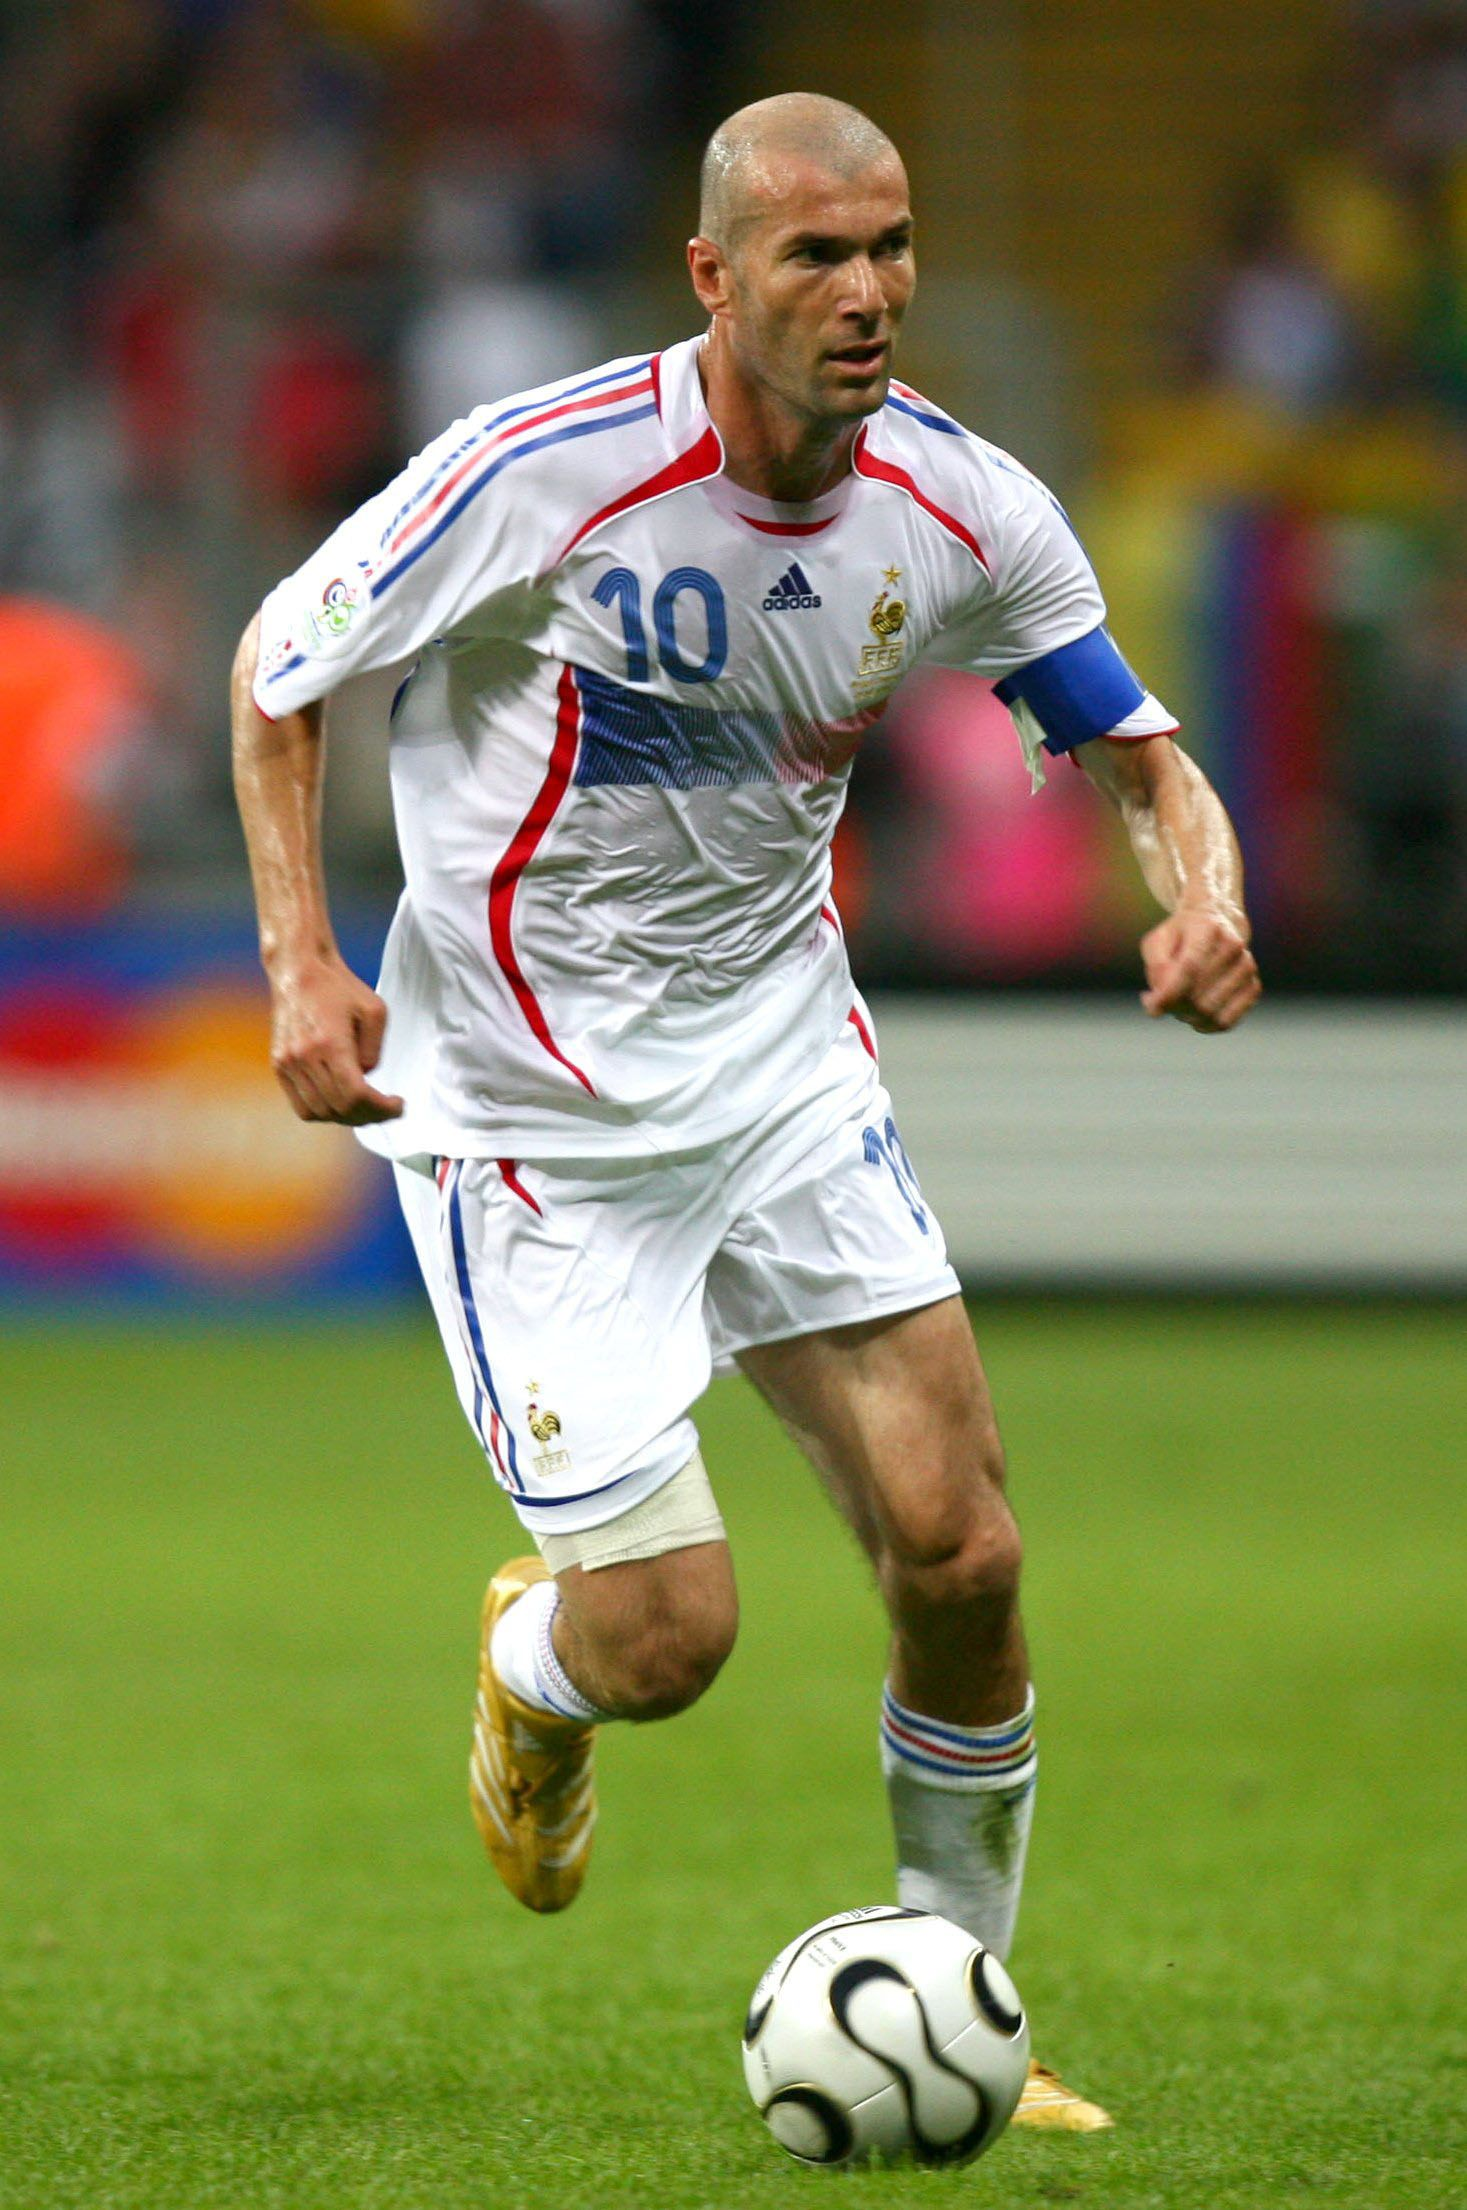 One of the best midfielders in the game of soccer of all